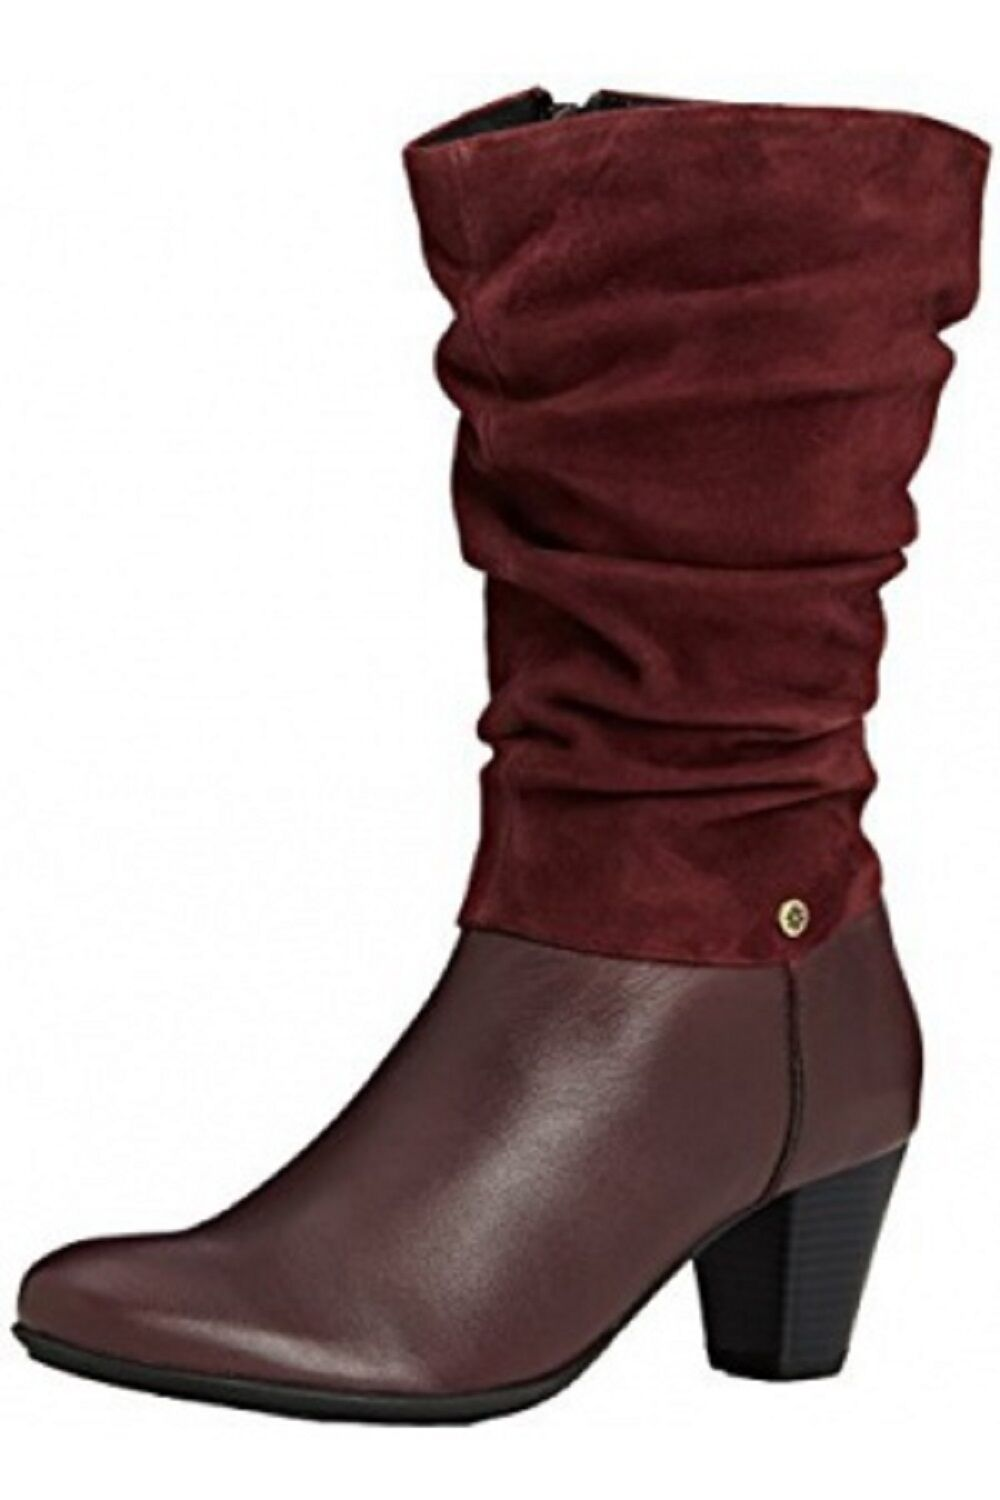 Van Dal Leather Mid Calf Boots 'Kline' Port/Red Leather Dal And Suede 3926c7